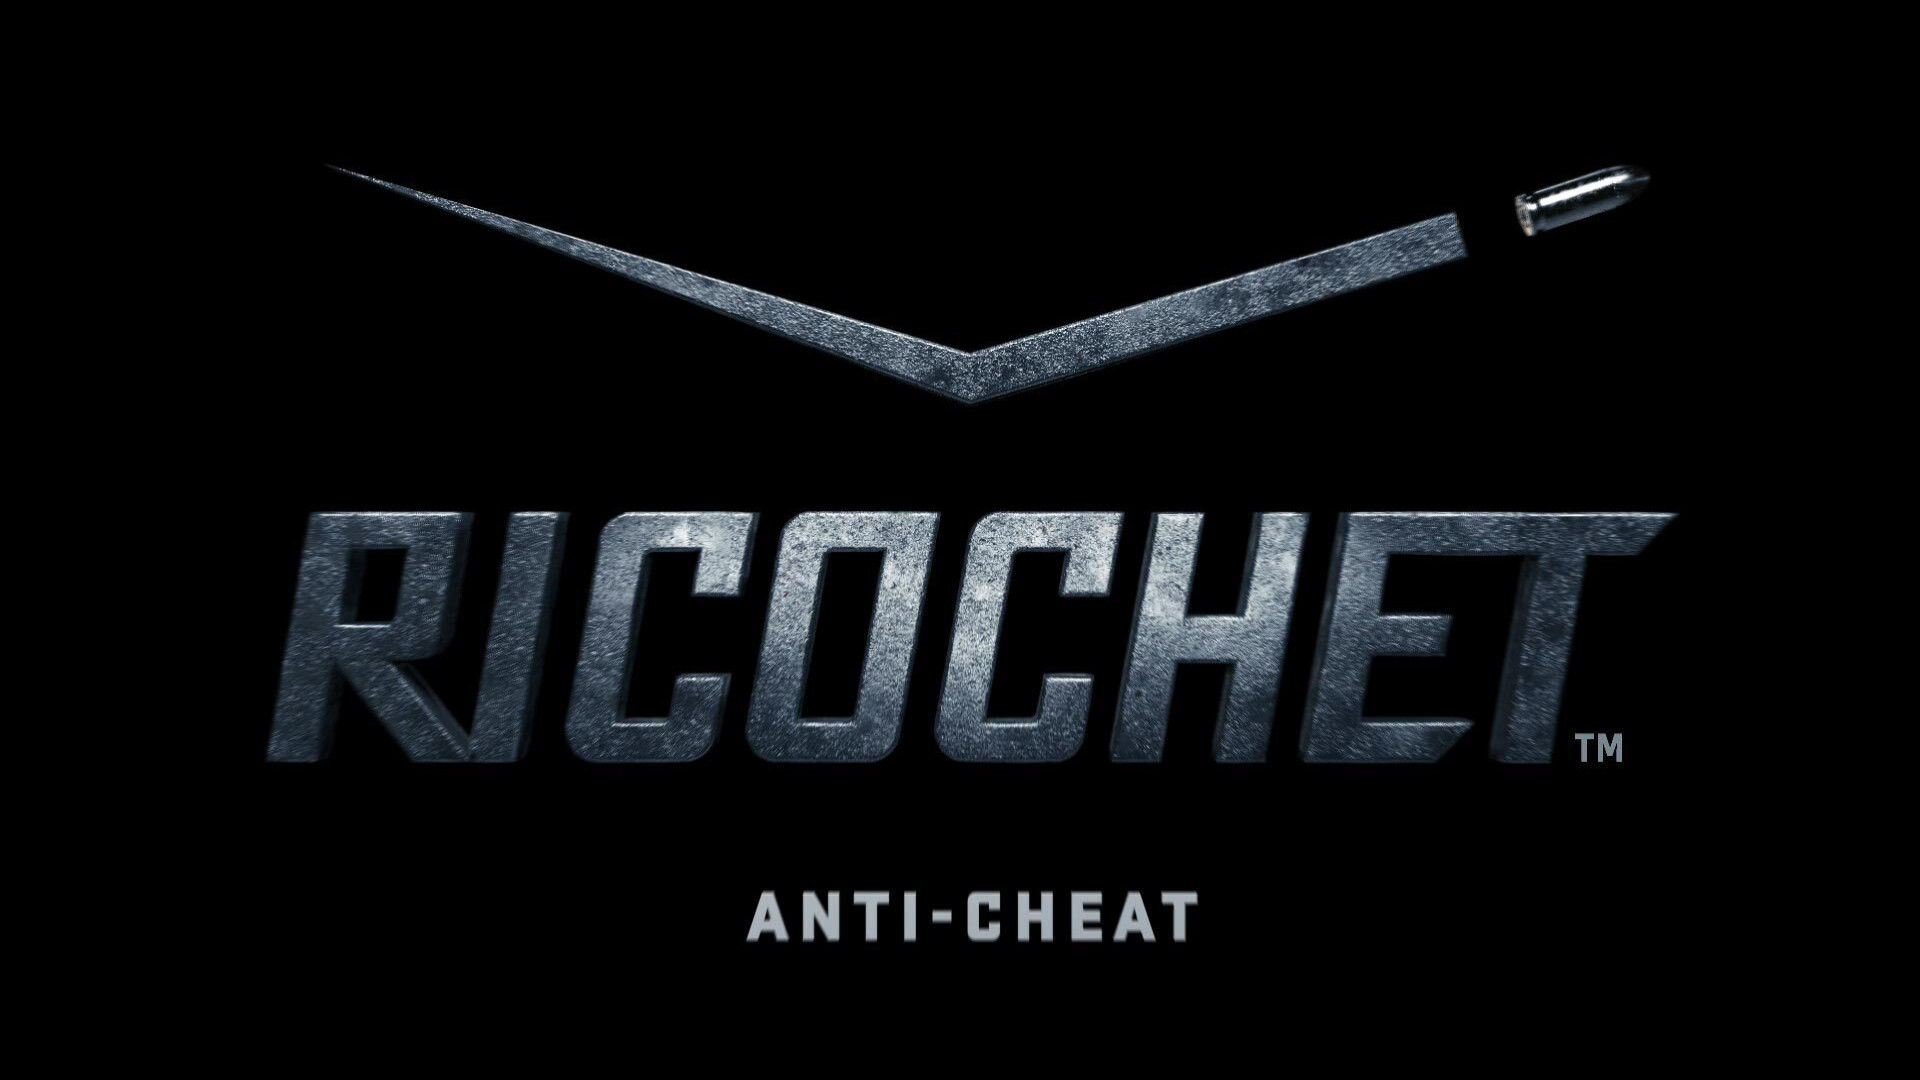 Activision onthult nieuw anti-cheat-systeem voor Call of Duty